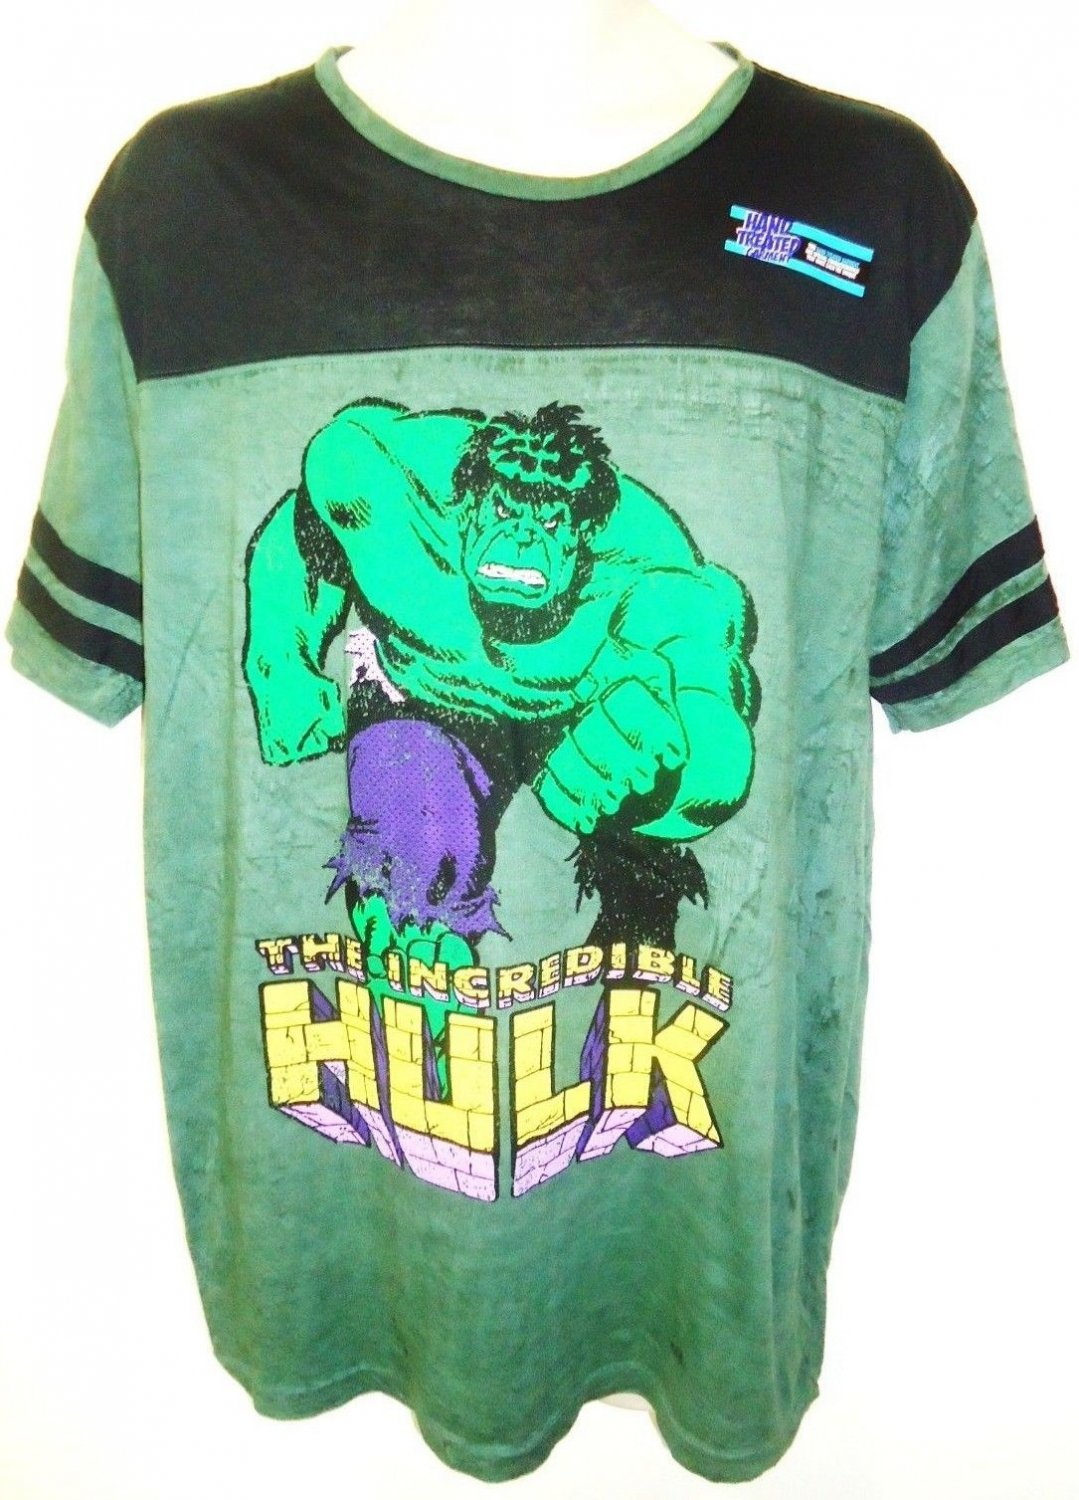 MARVEL - THE INCREDIBLE HULK - XL - GREEN - BLACK - RETRO - TEE - NEW - AVENGERS